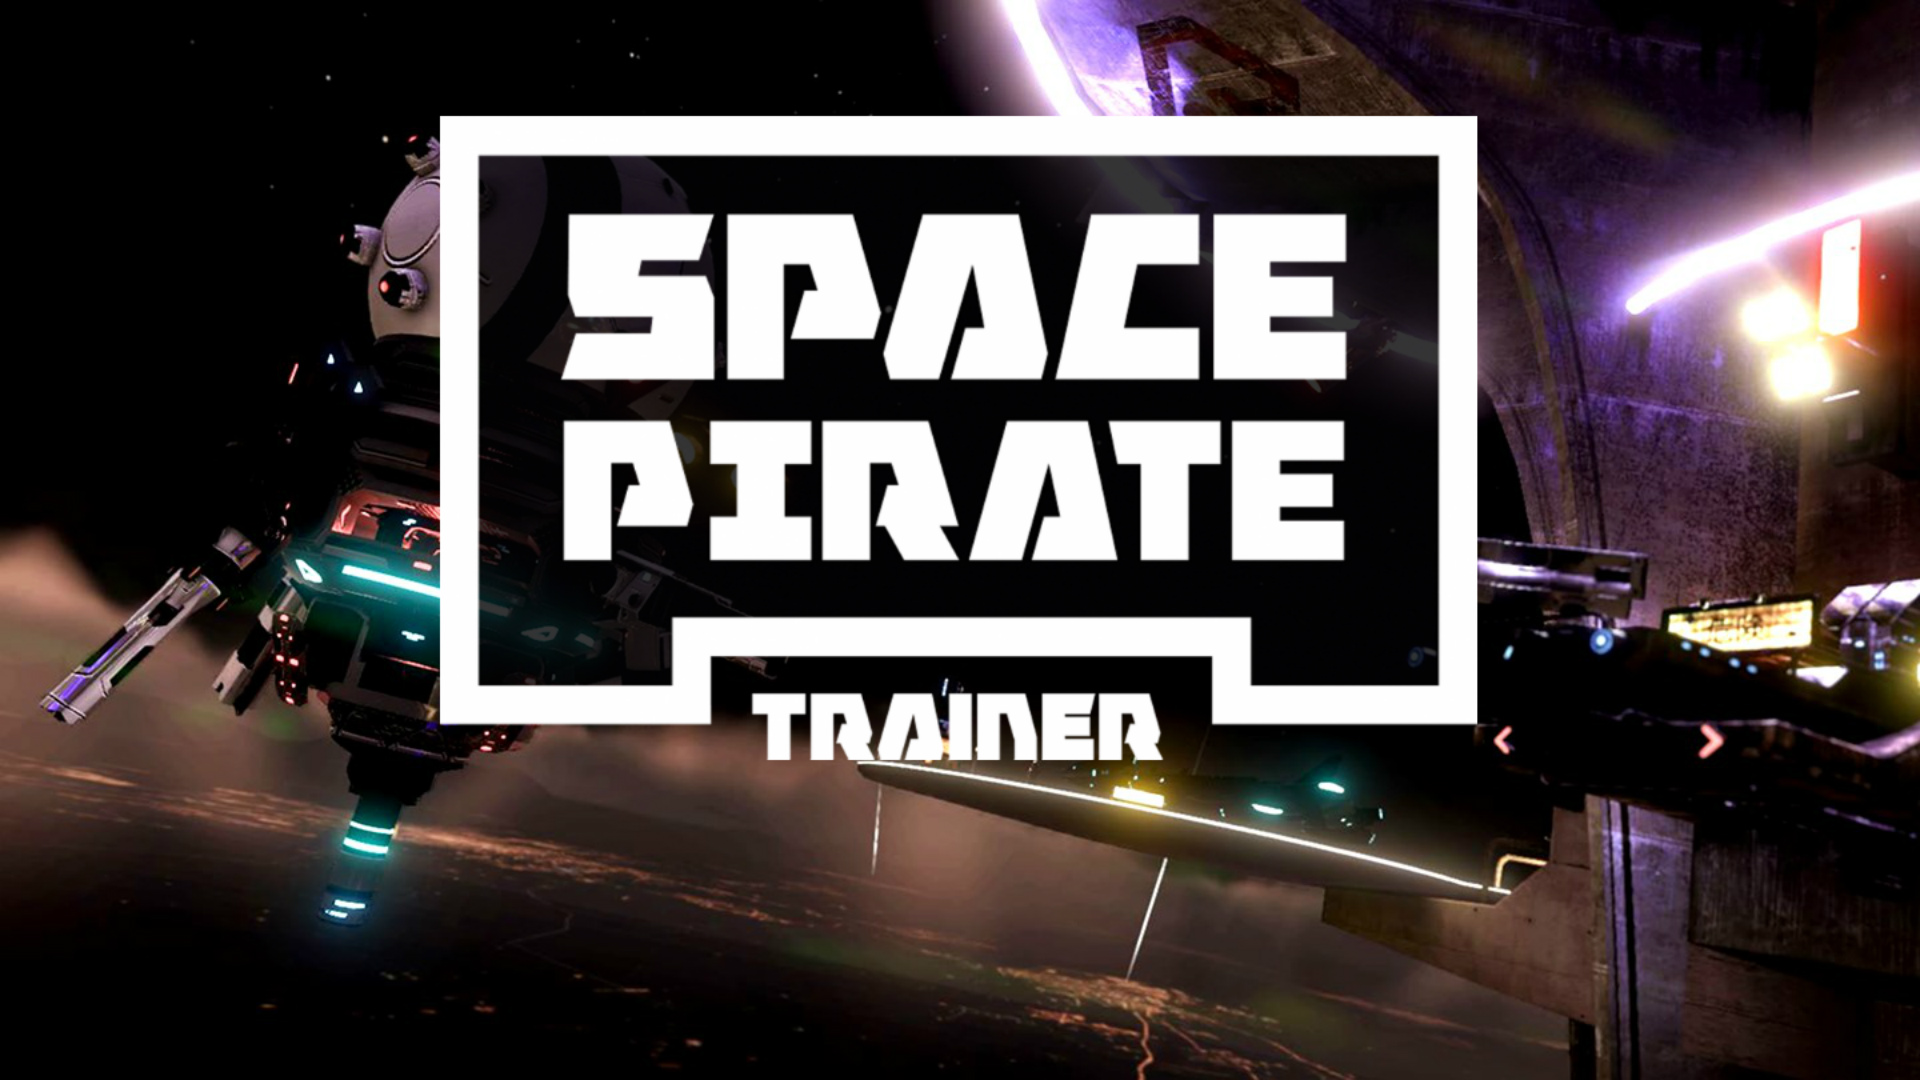 space pirate trainer logo wallpaper 67923